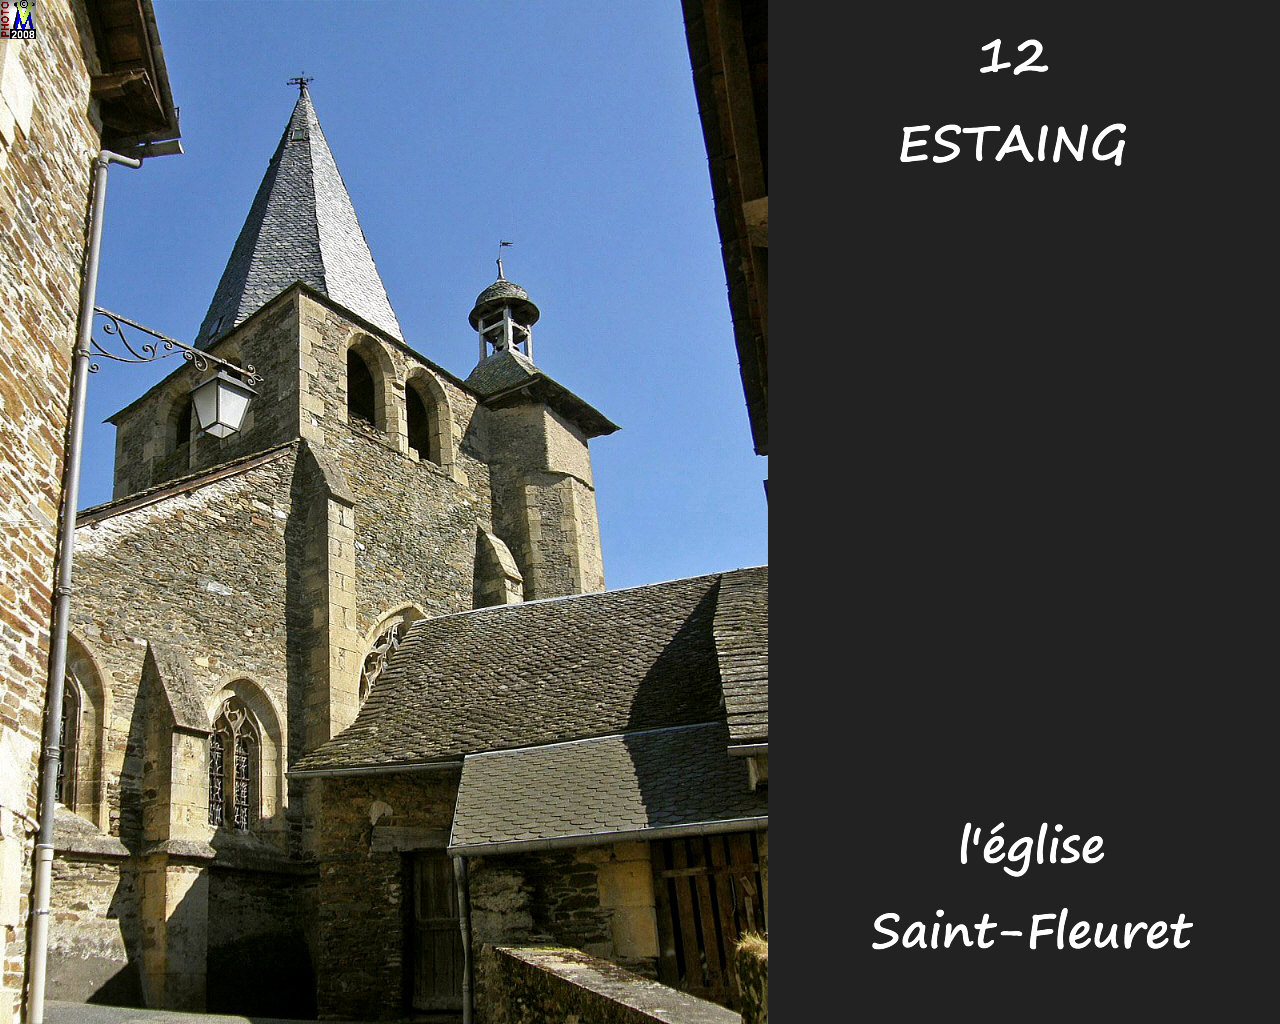 12ESTAING_eglise_106.jpg